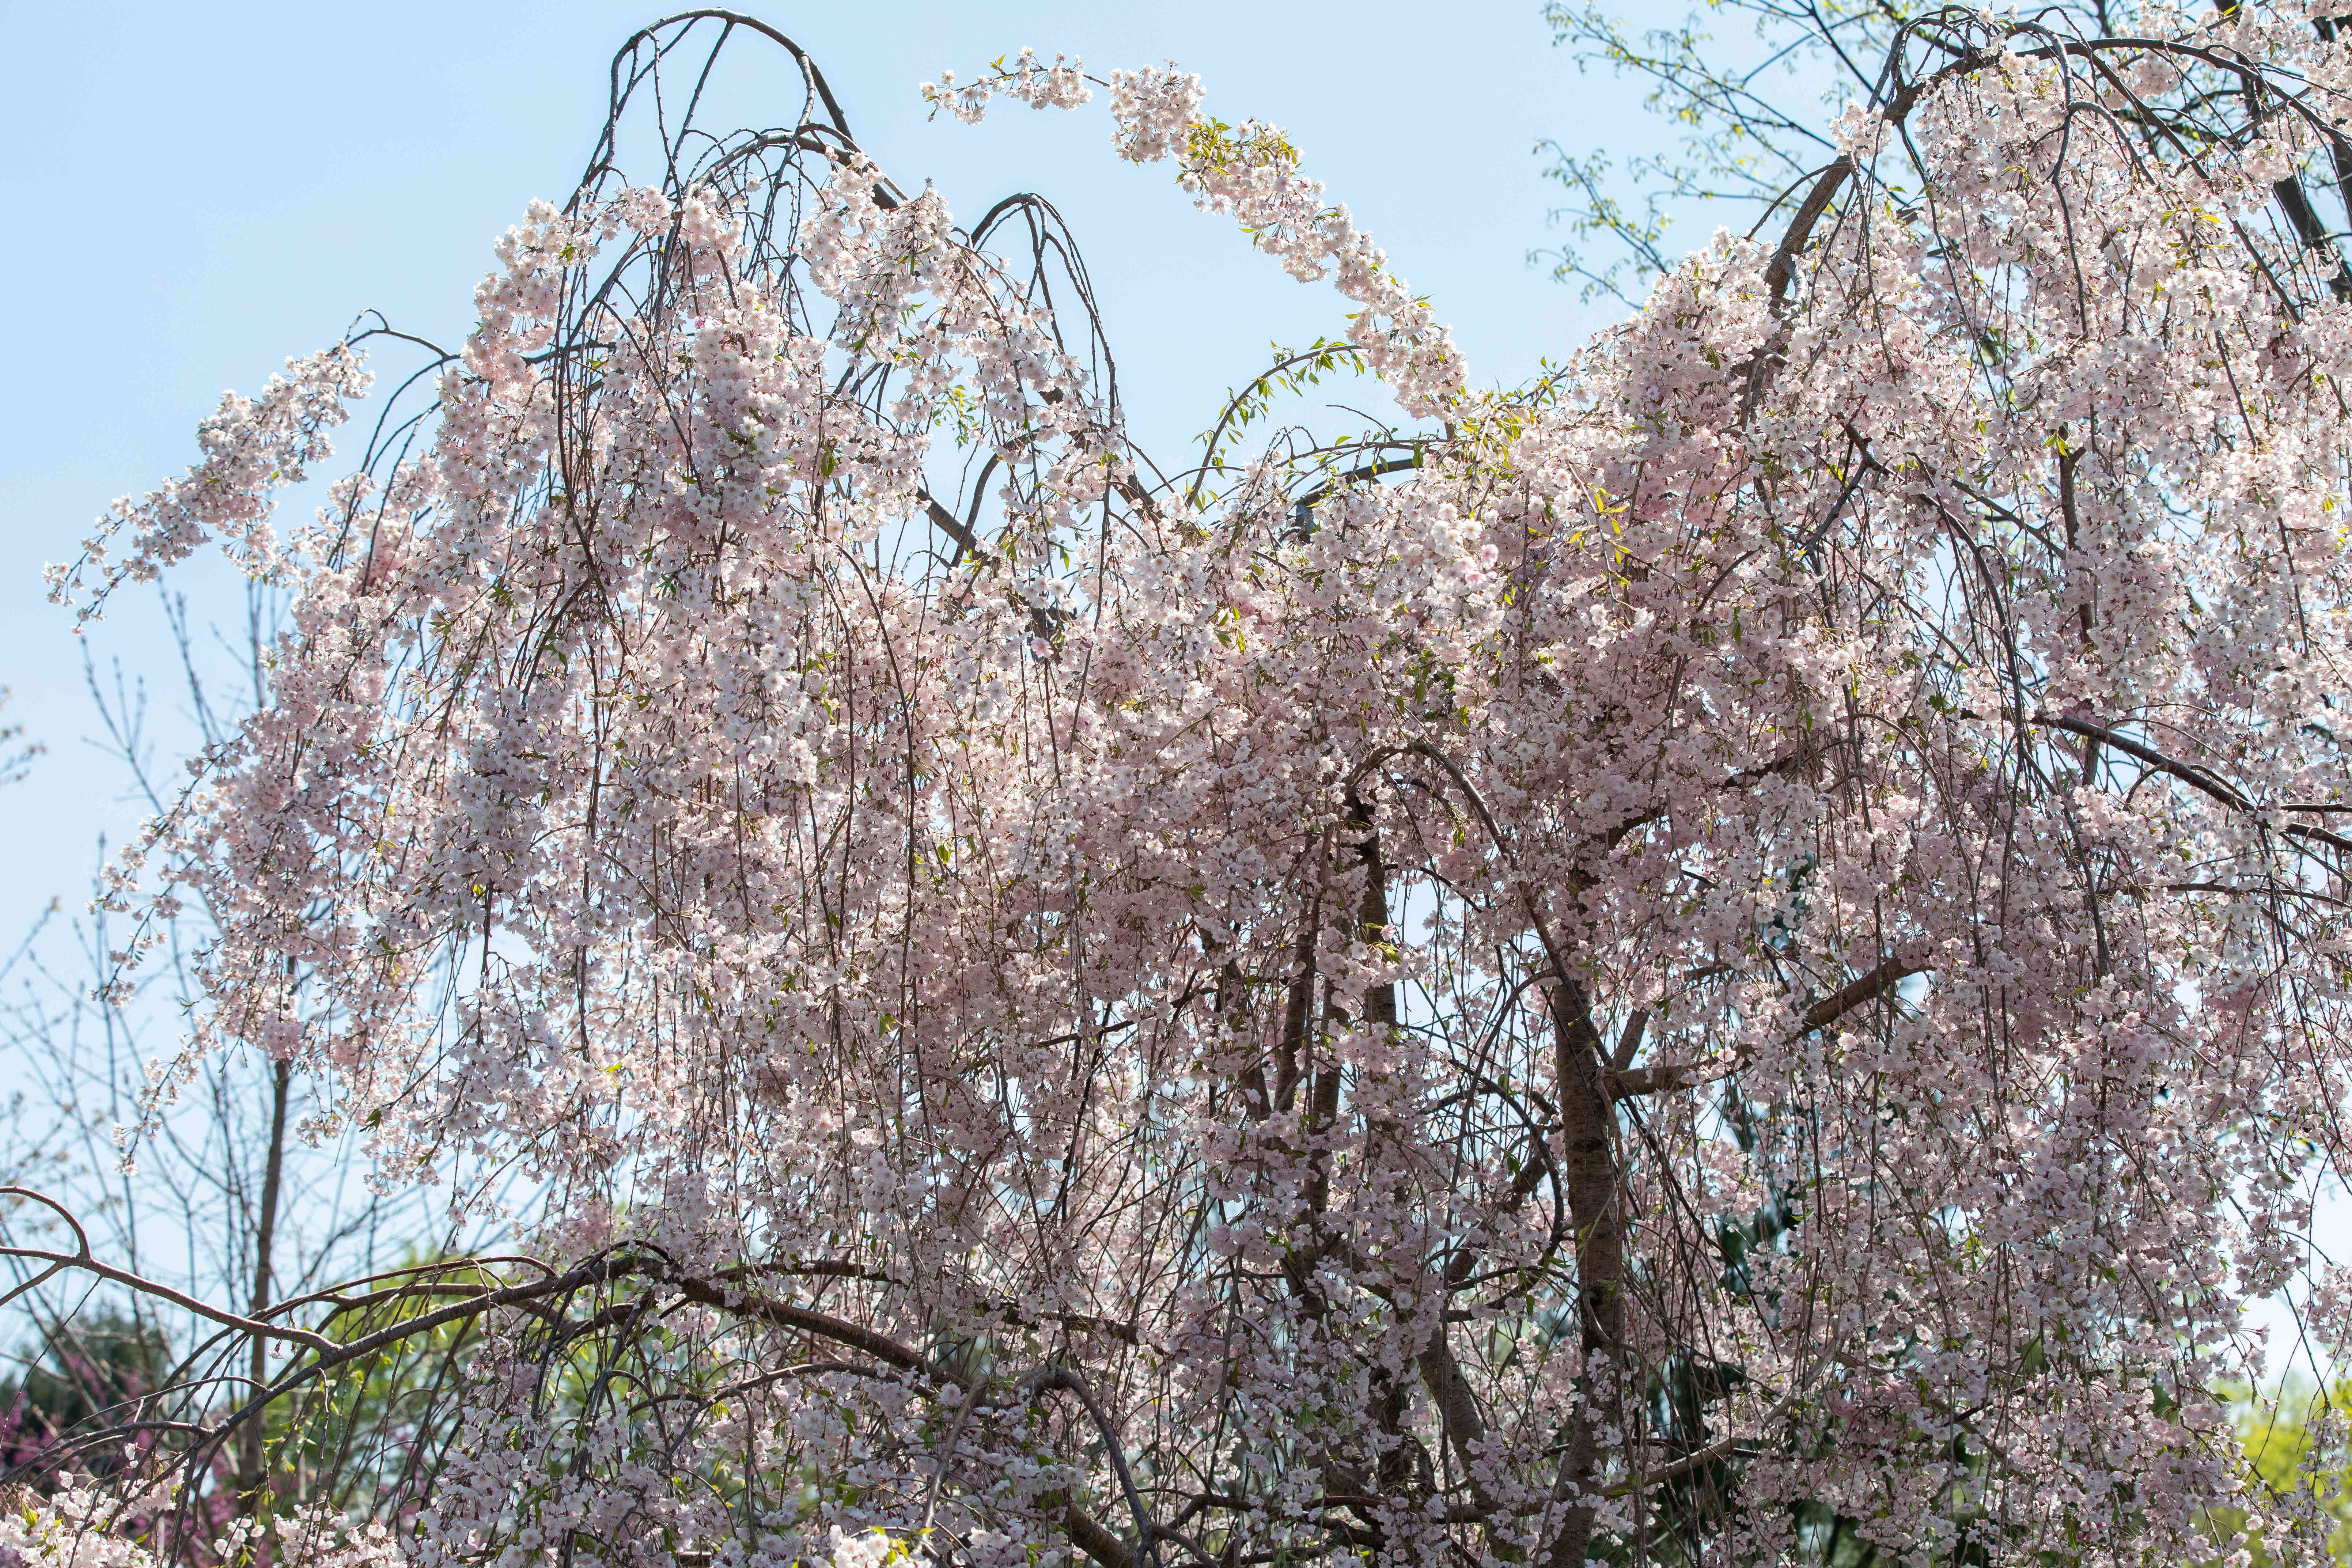 Weeping cherry tree with drooping branches and light pink flowers against blue skies